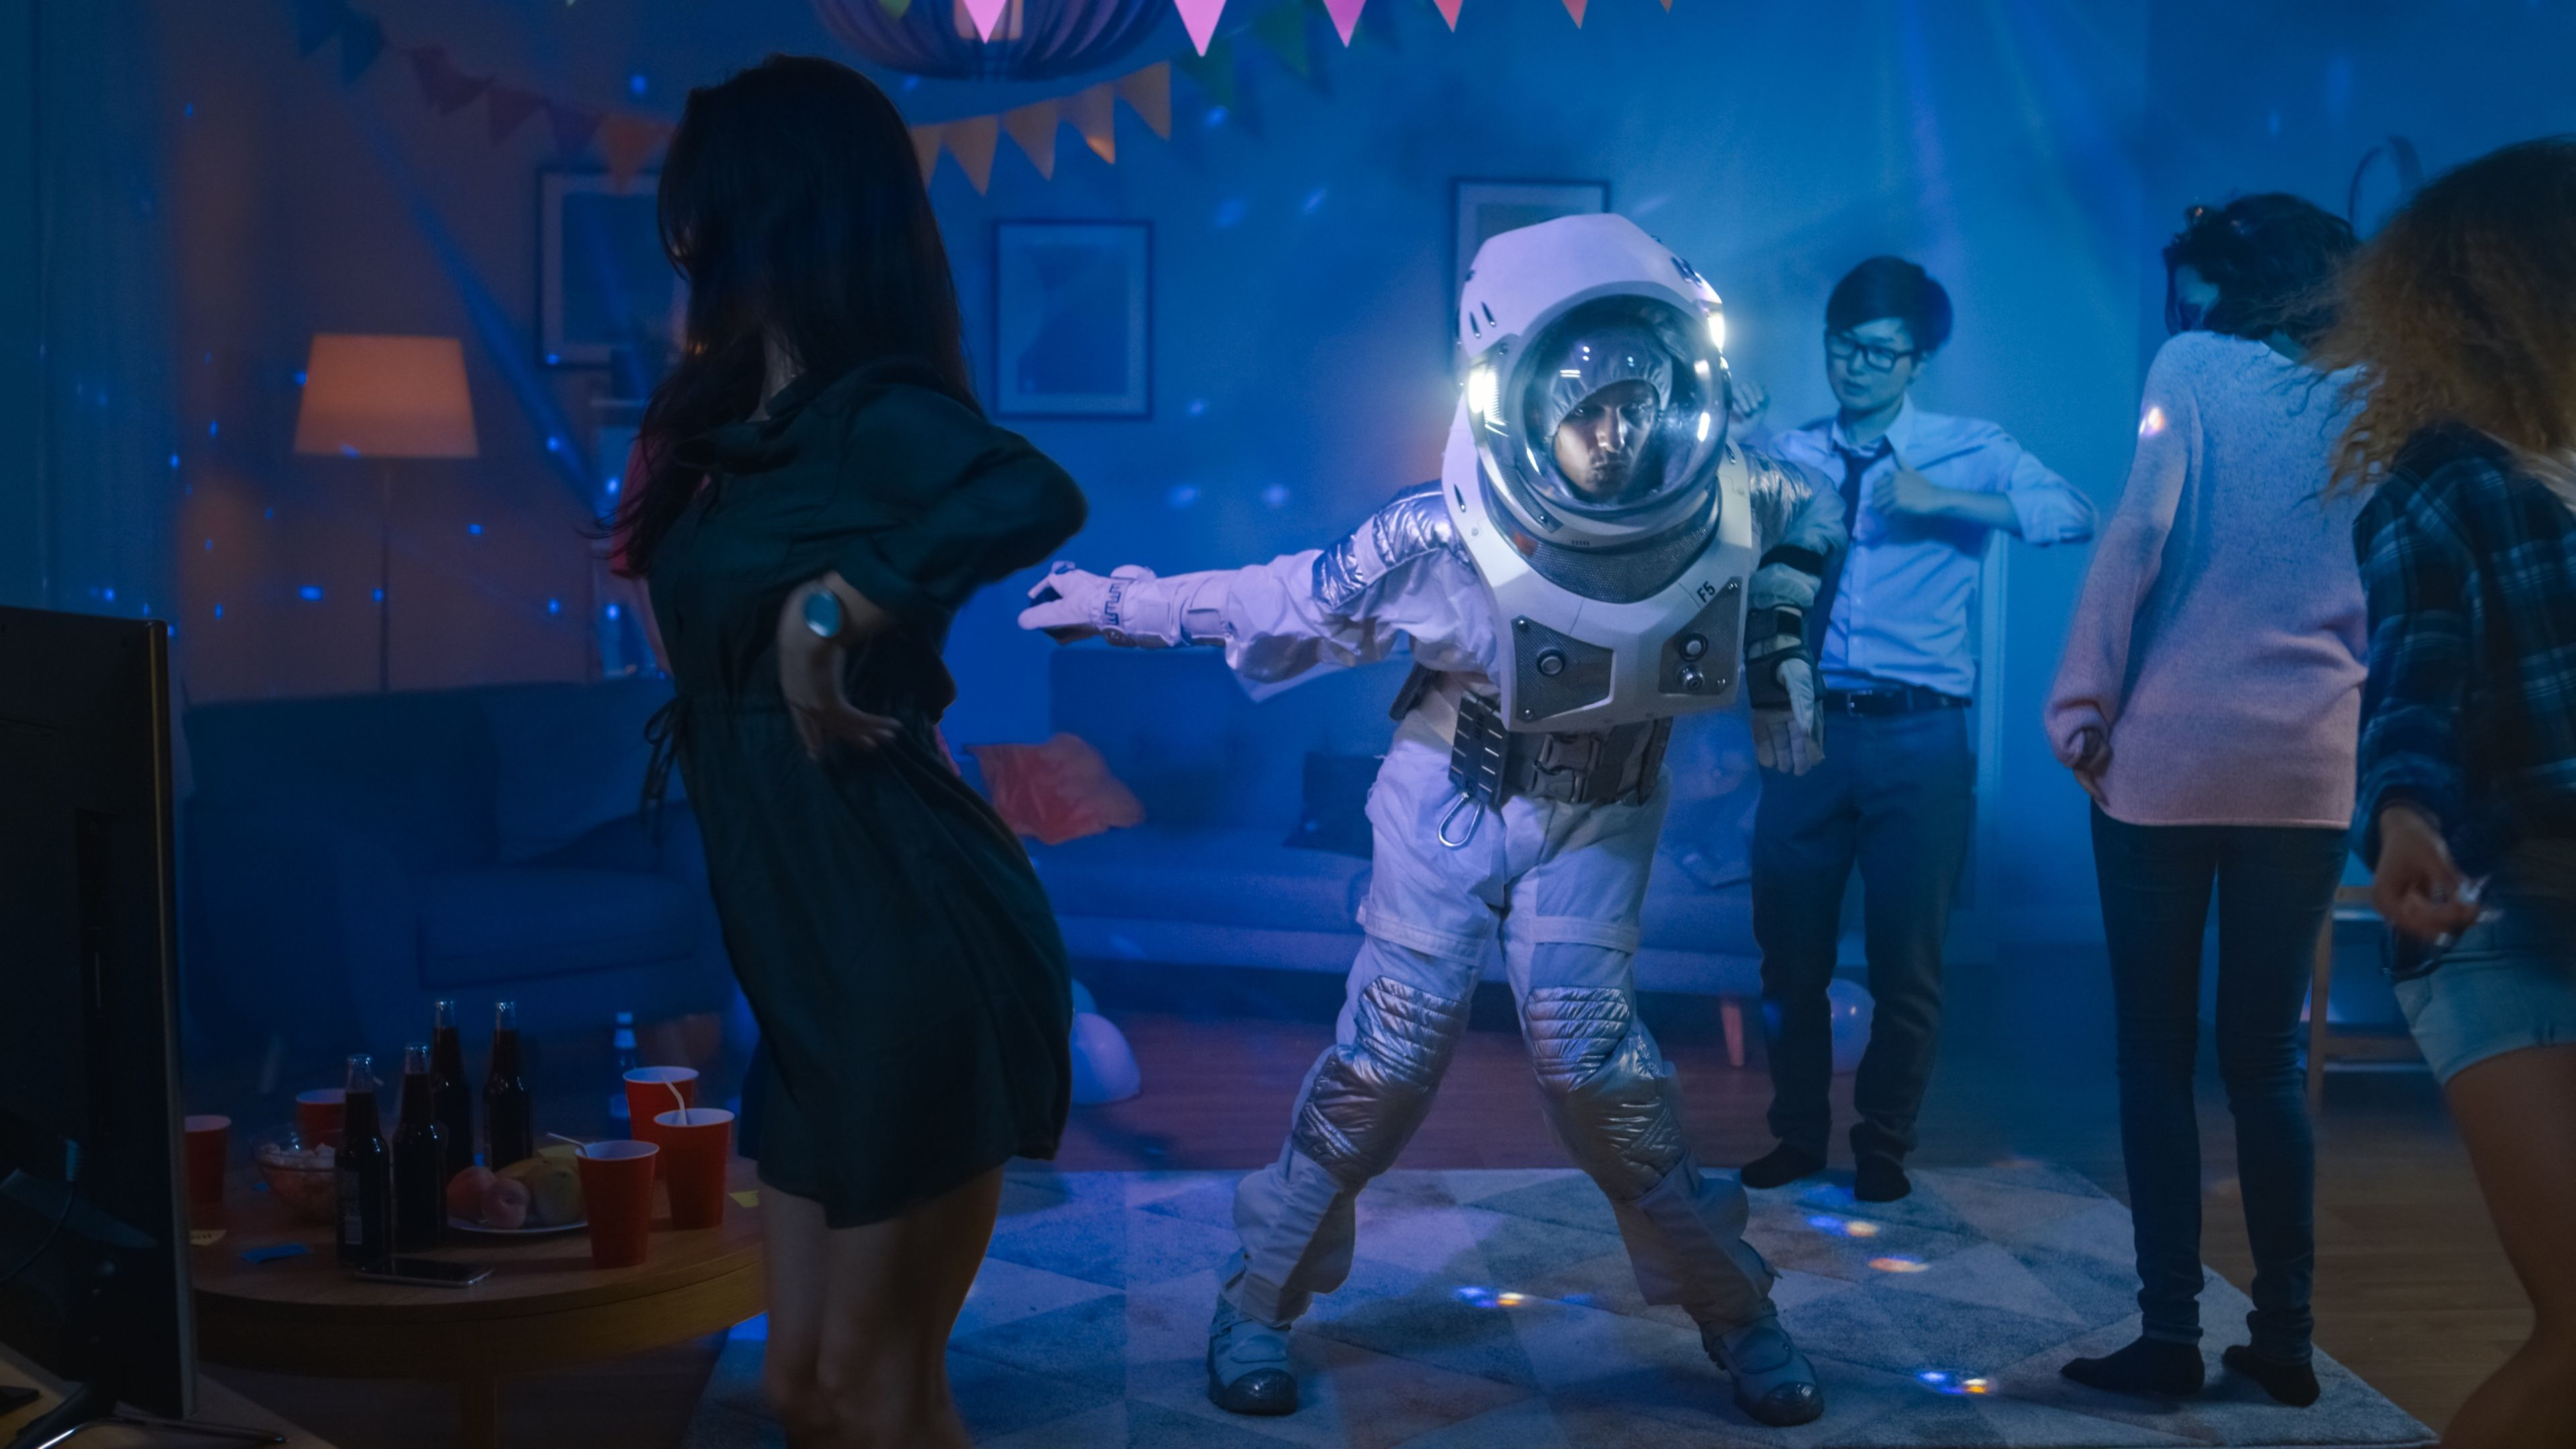 Astronaut man at houes party. Does My Home Qualify for a Mortgage Relief Program?